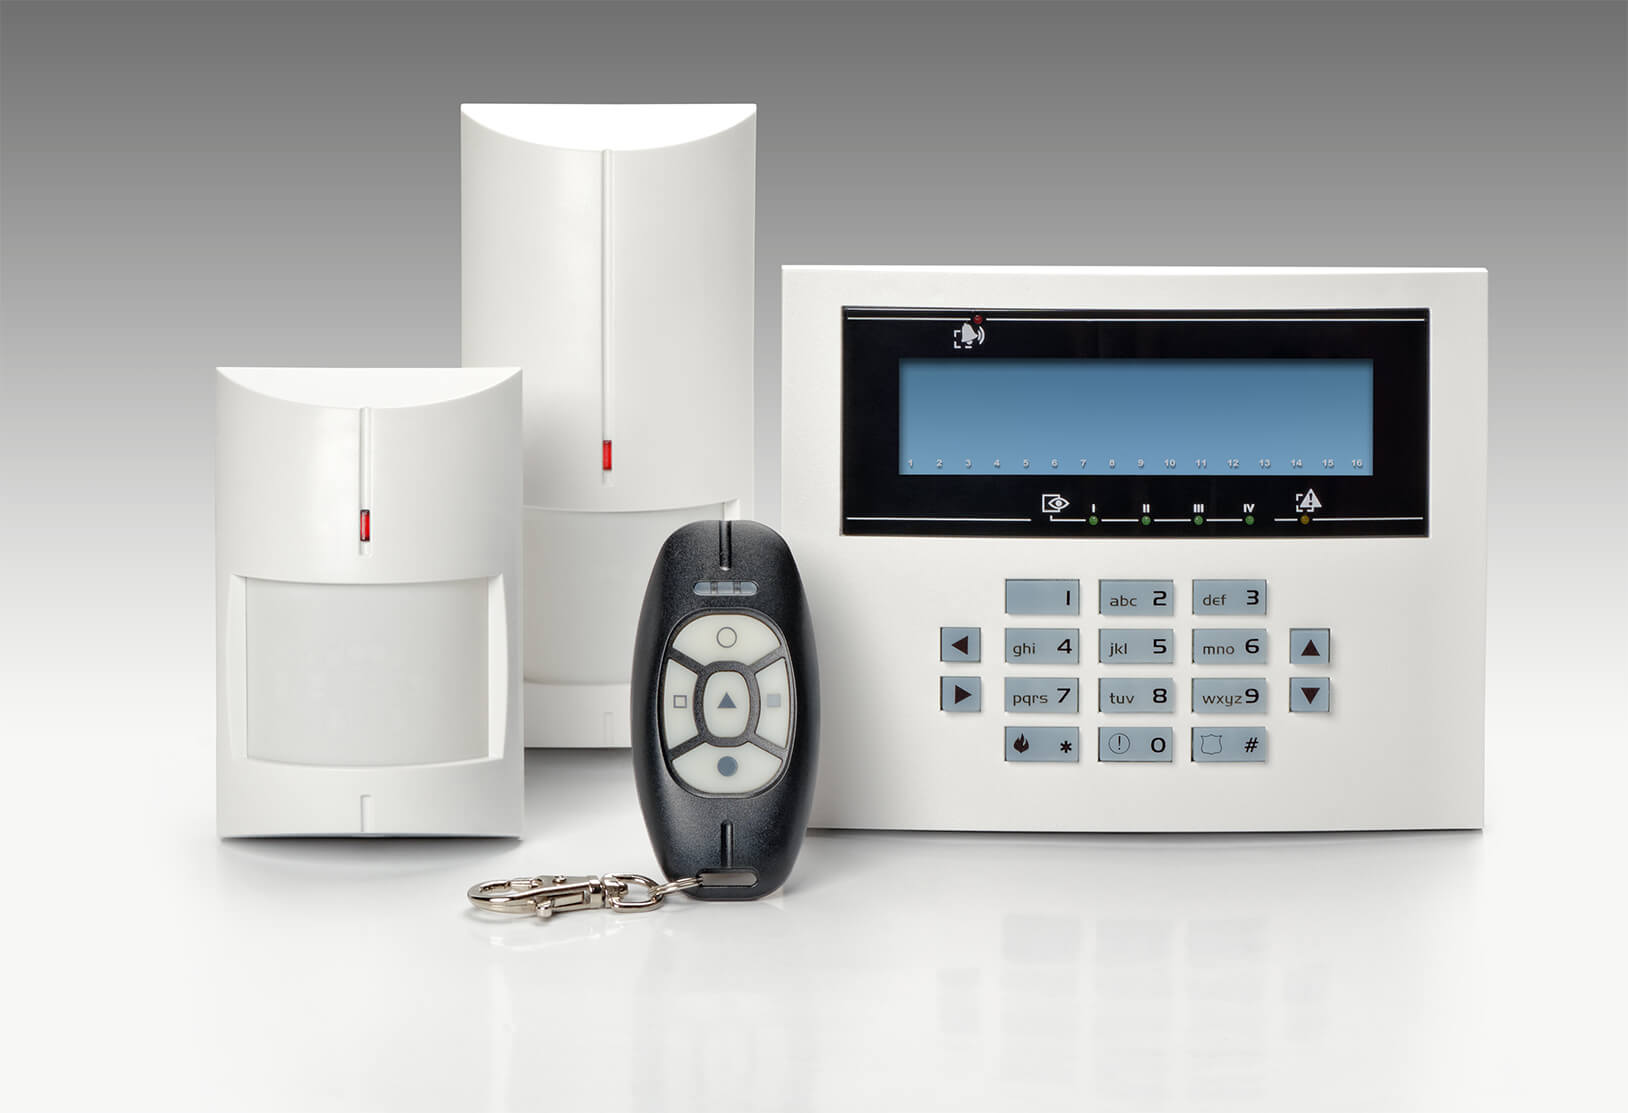 Business & Residential NACOSS Approved Burglar Alarms In Hornsey N6 - Local Hornsey N6 security company.Call 02078872244 - Dedicated to Safety & Security. Companies, shops and homes ..